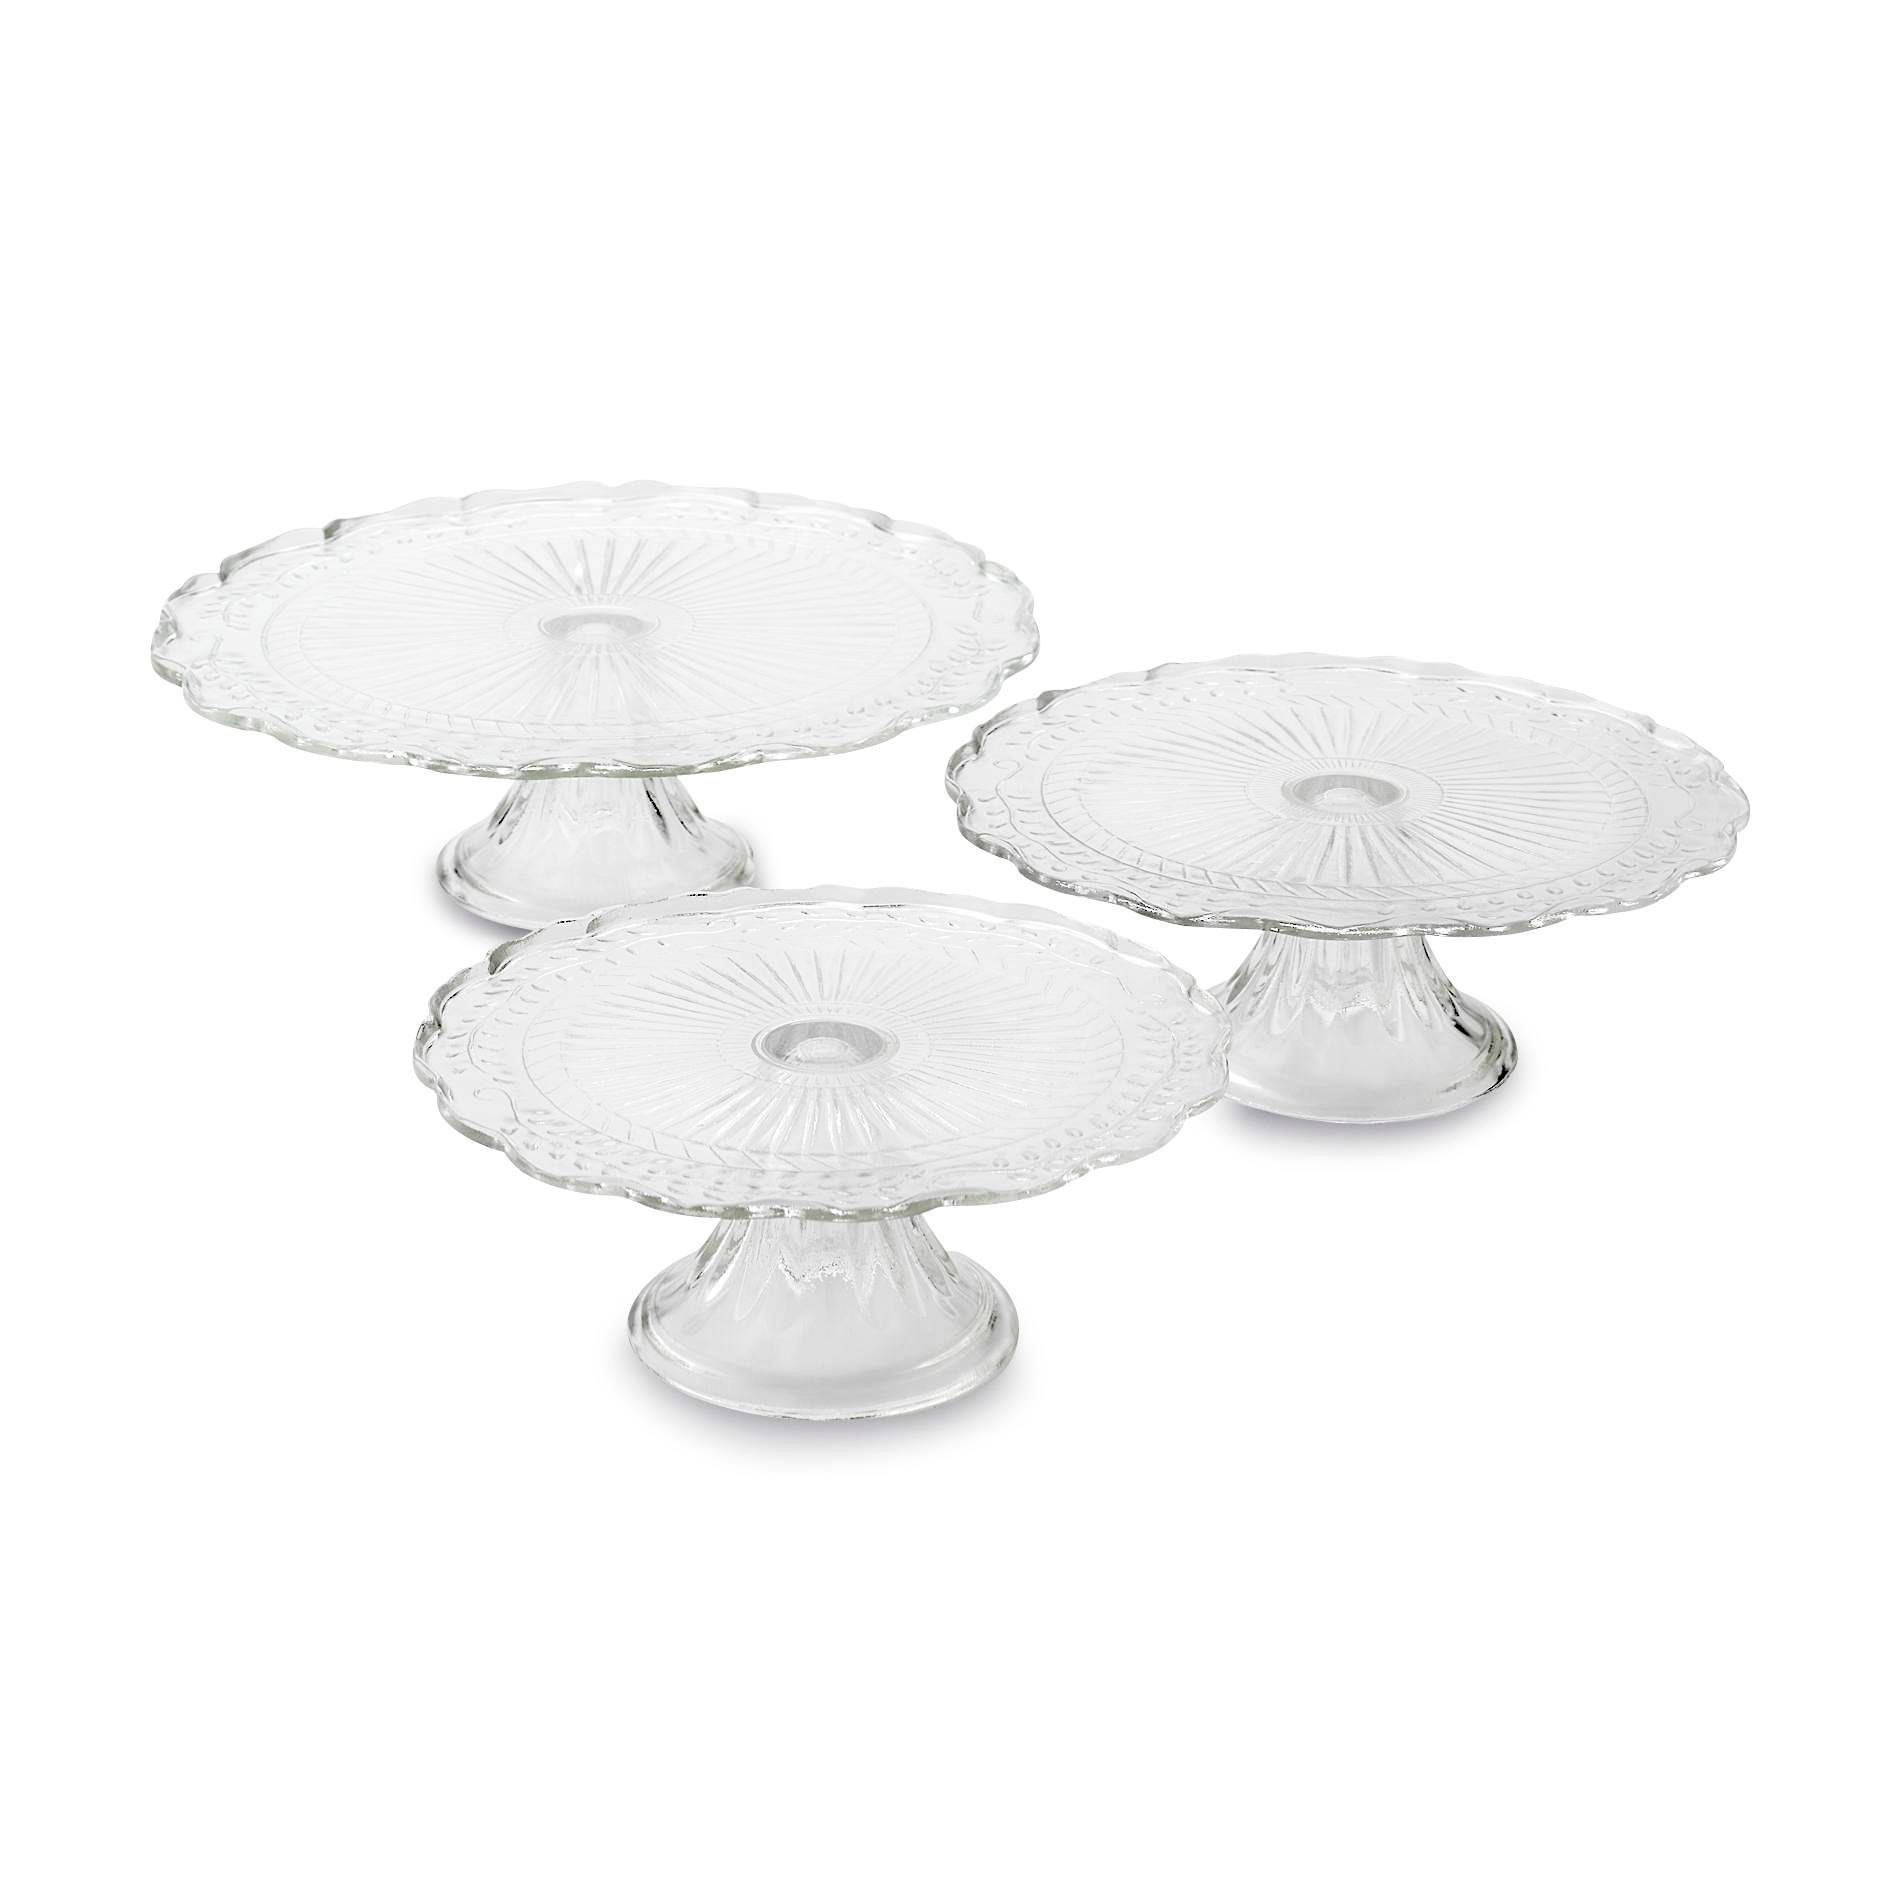 3 Tier Glass Server Set Clear In 2020 Disposable Cupcake Stand Tiered Cake Stands Cardboard Cupcake Stand